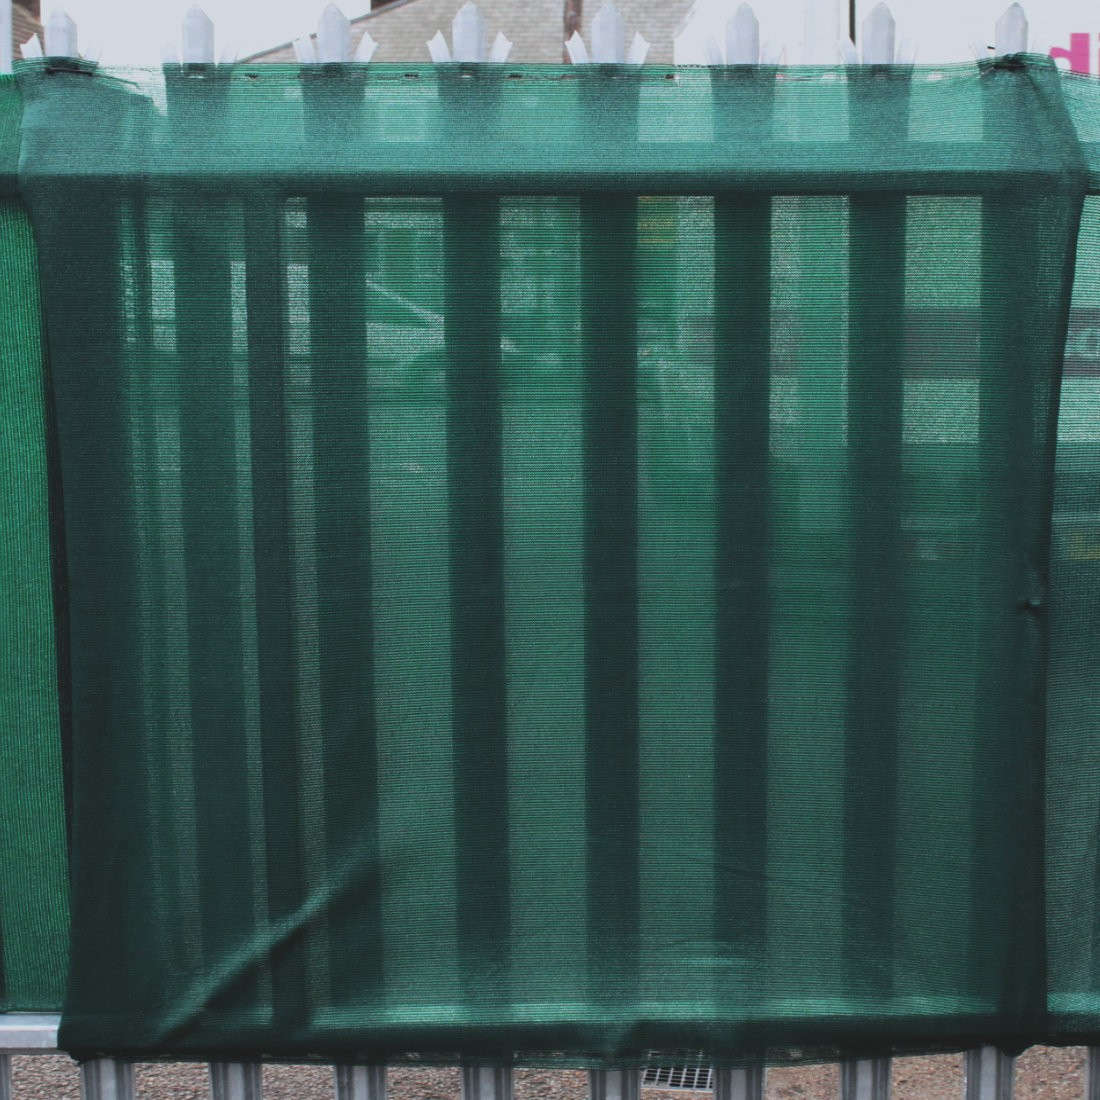 95% Shade Netting also for Privacy Screening